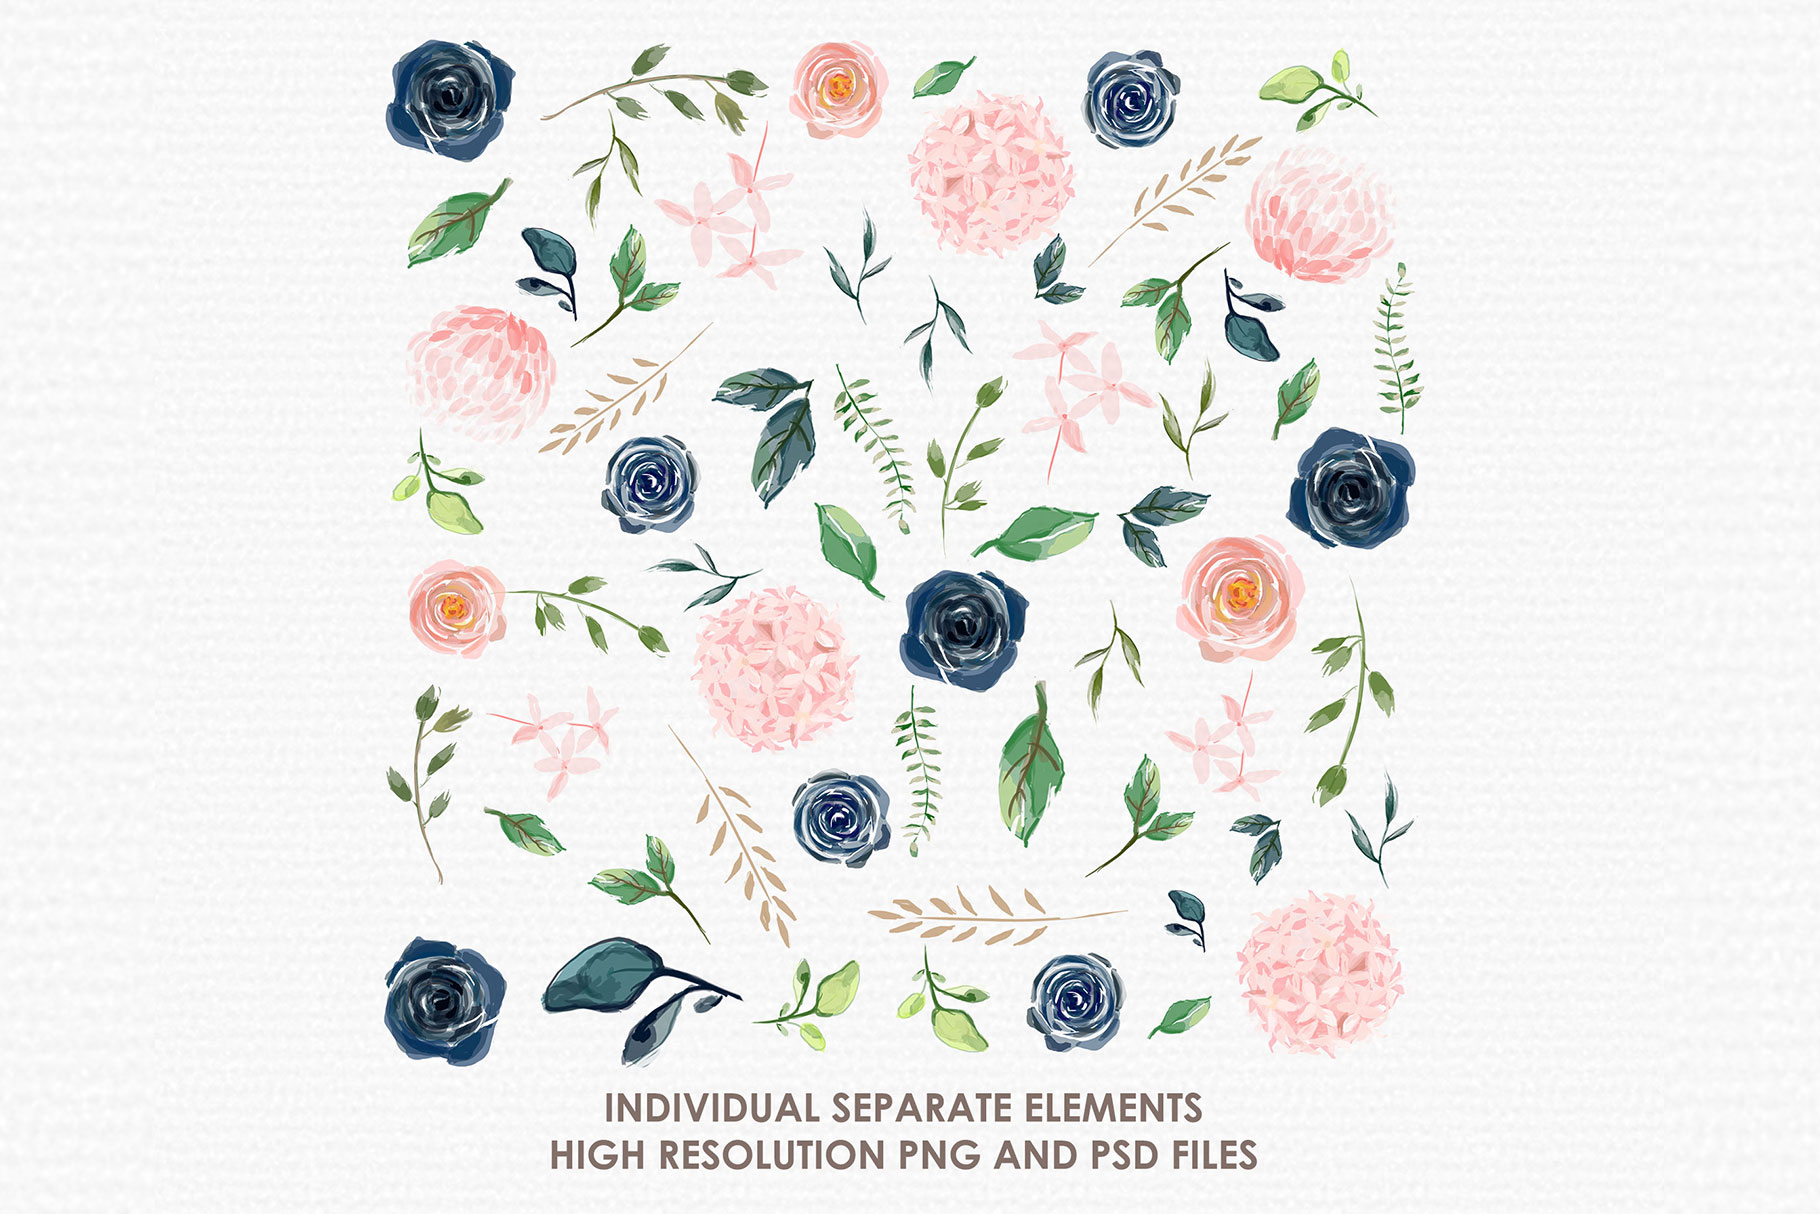 Morganisa - Digital Watercolor Floral Flower Style Clipart example image 2